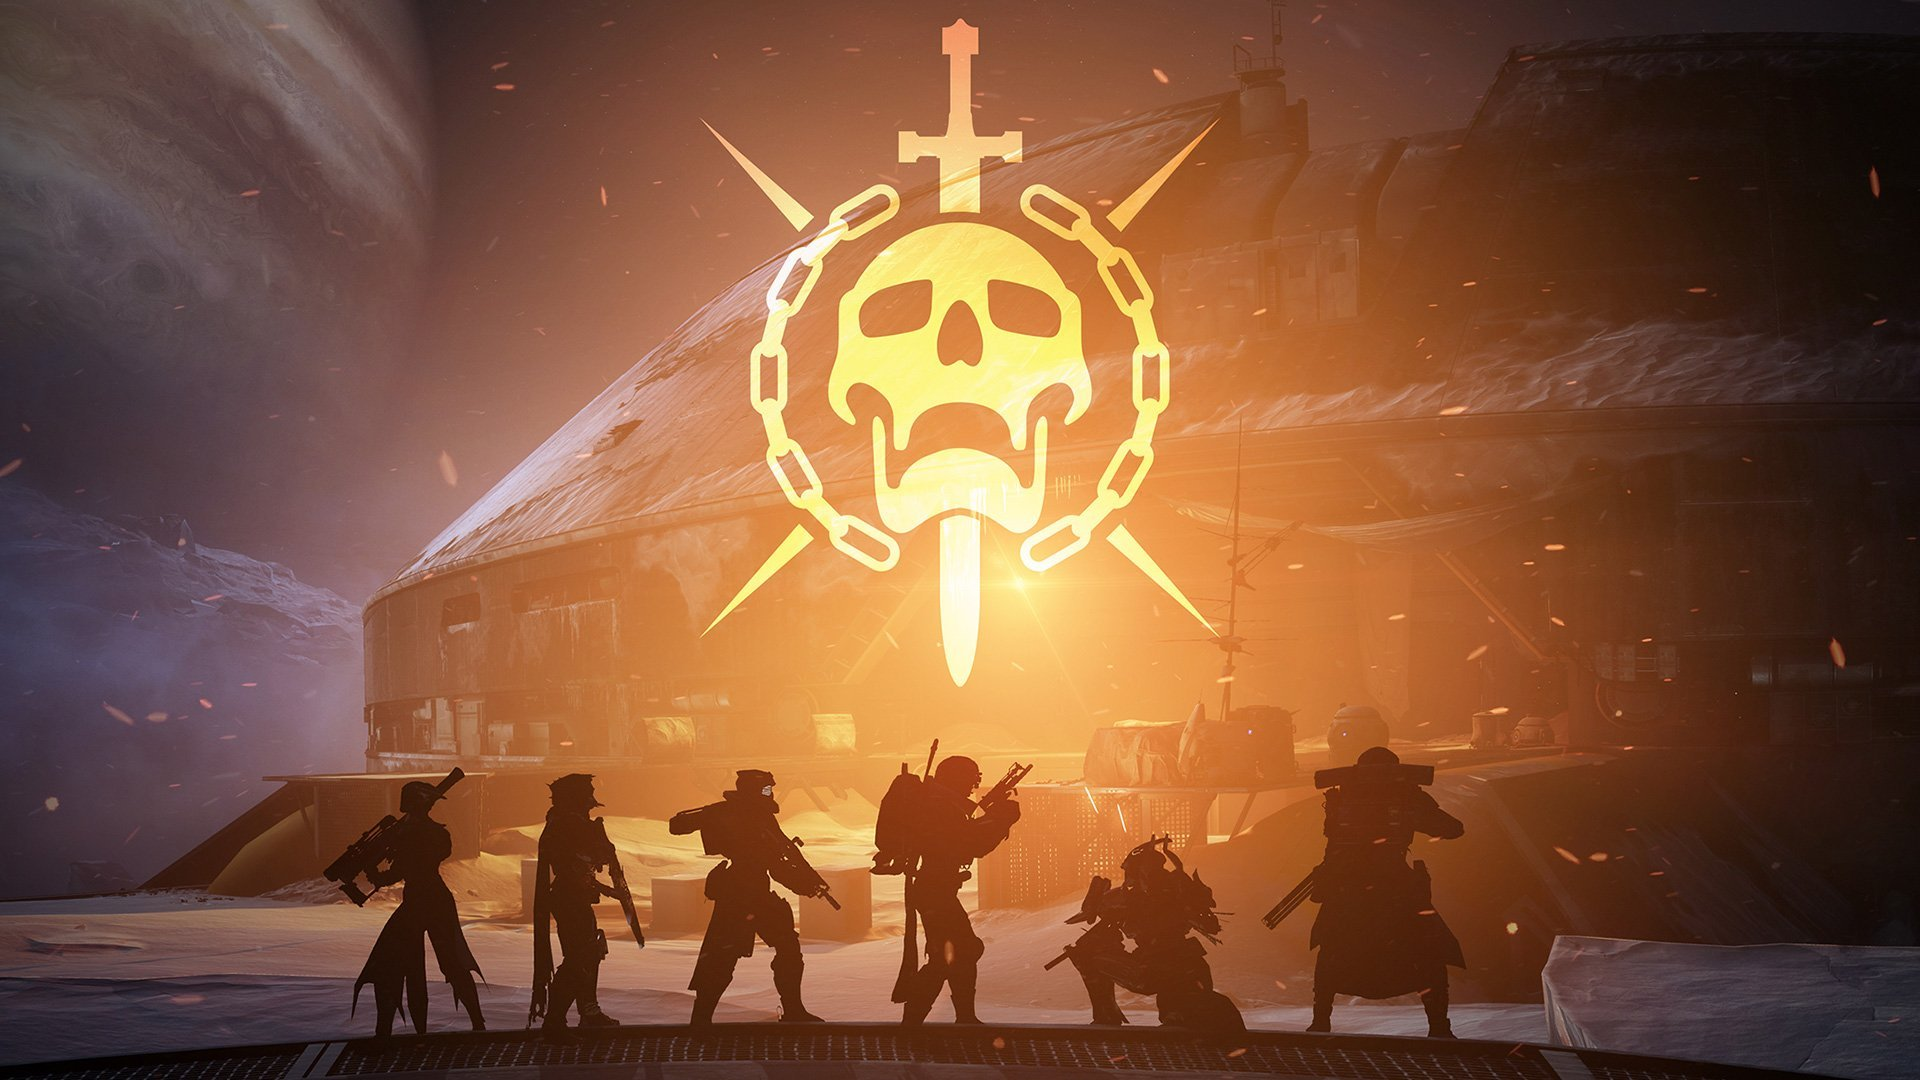 Destiny 2's next expansion is delayed into 2022, so we'll have to subside on Beyond Light screenshot